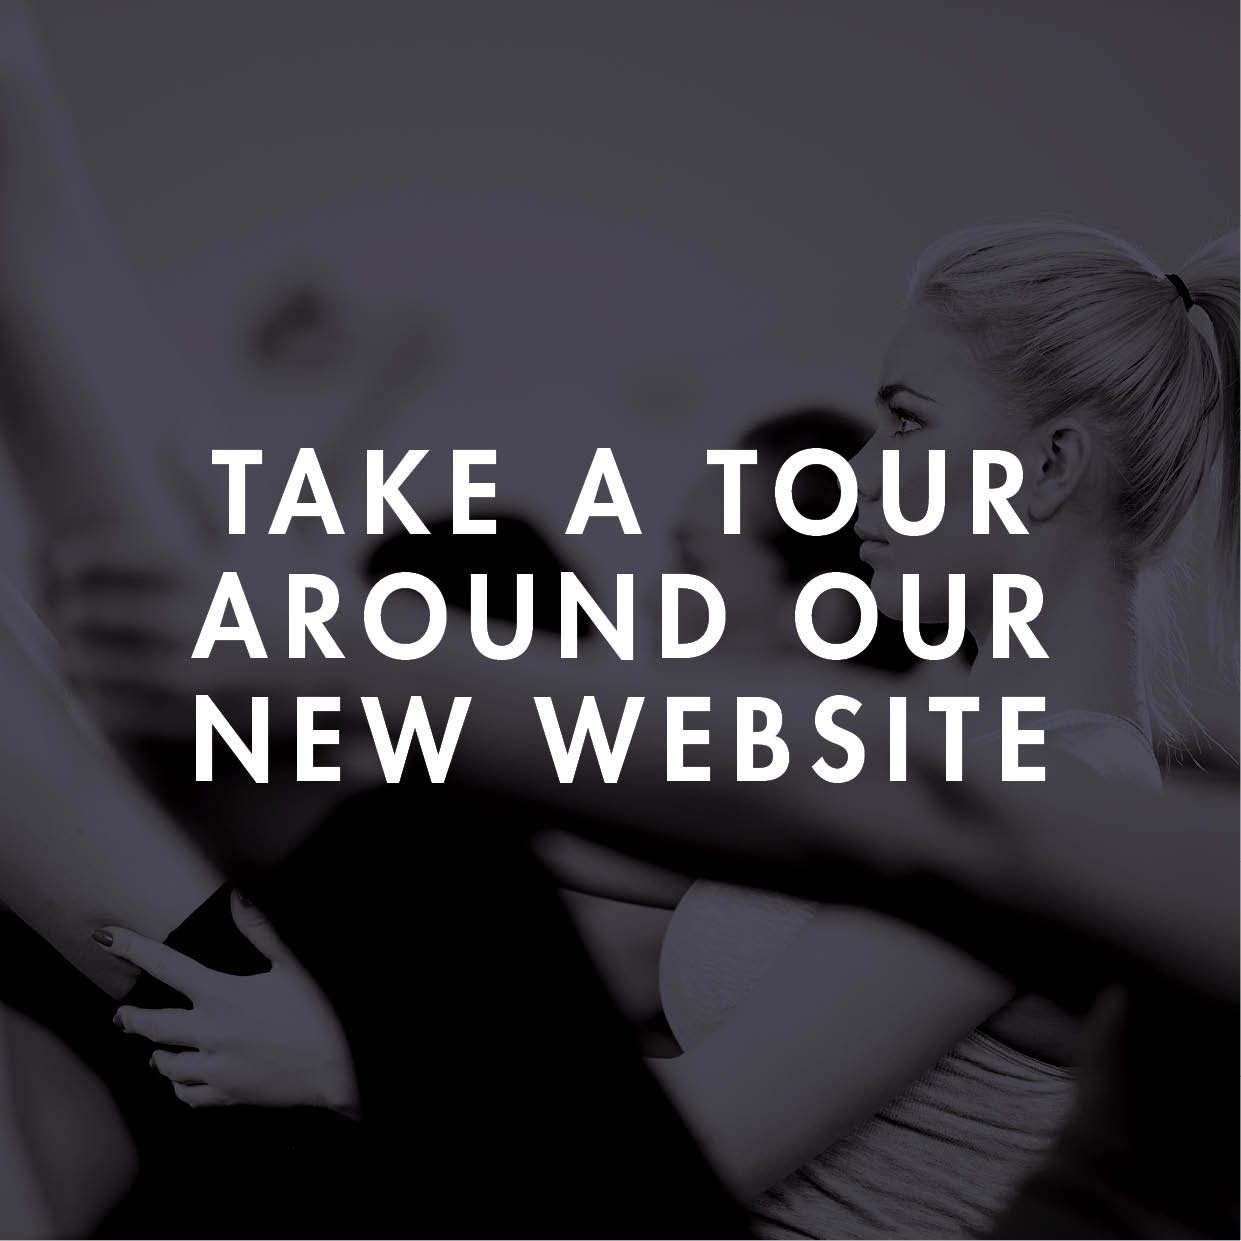 Tour our new site